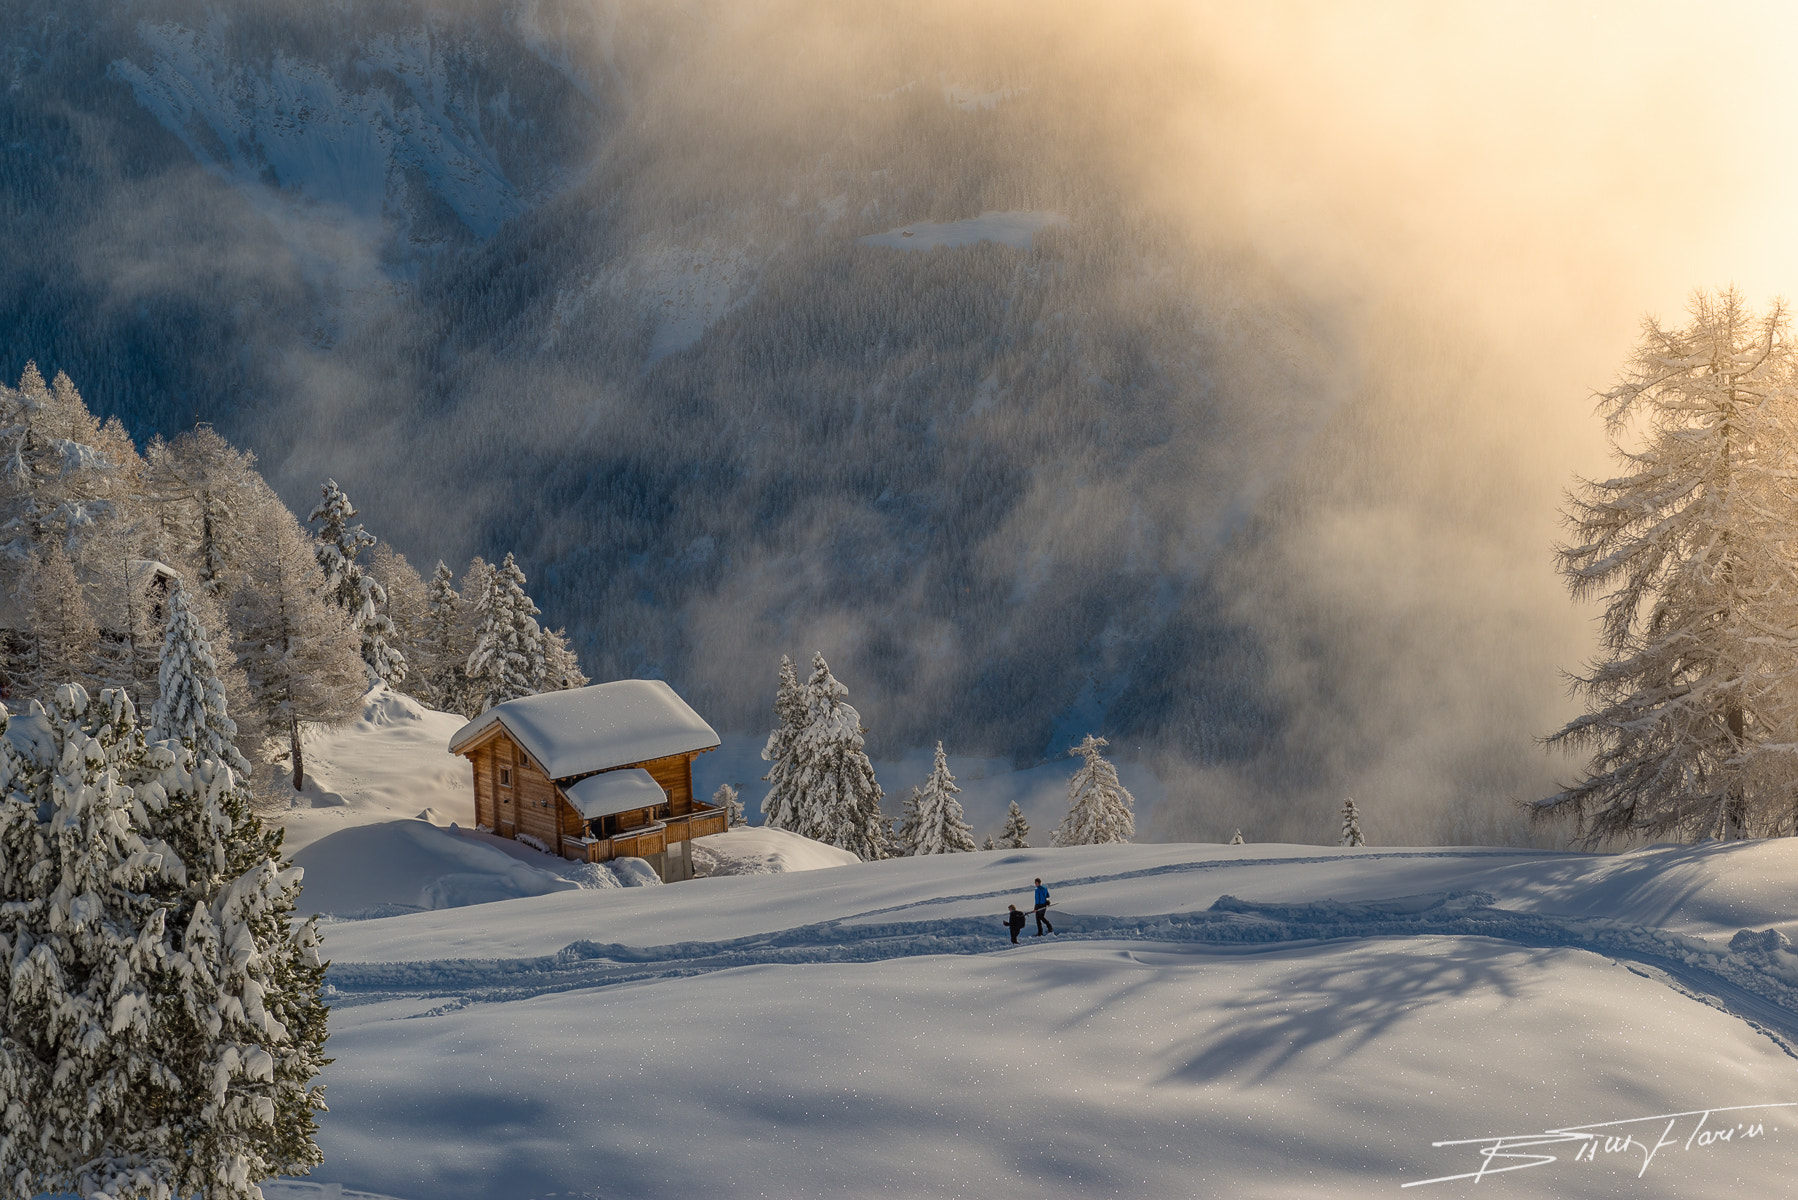 Photograph Walking on the snow by Florin Biscu on 500px